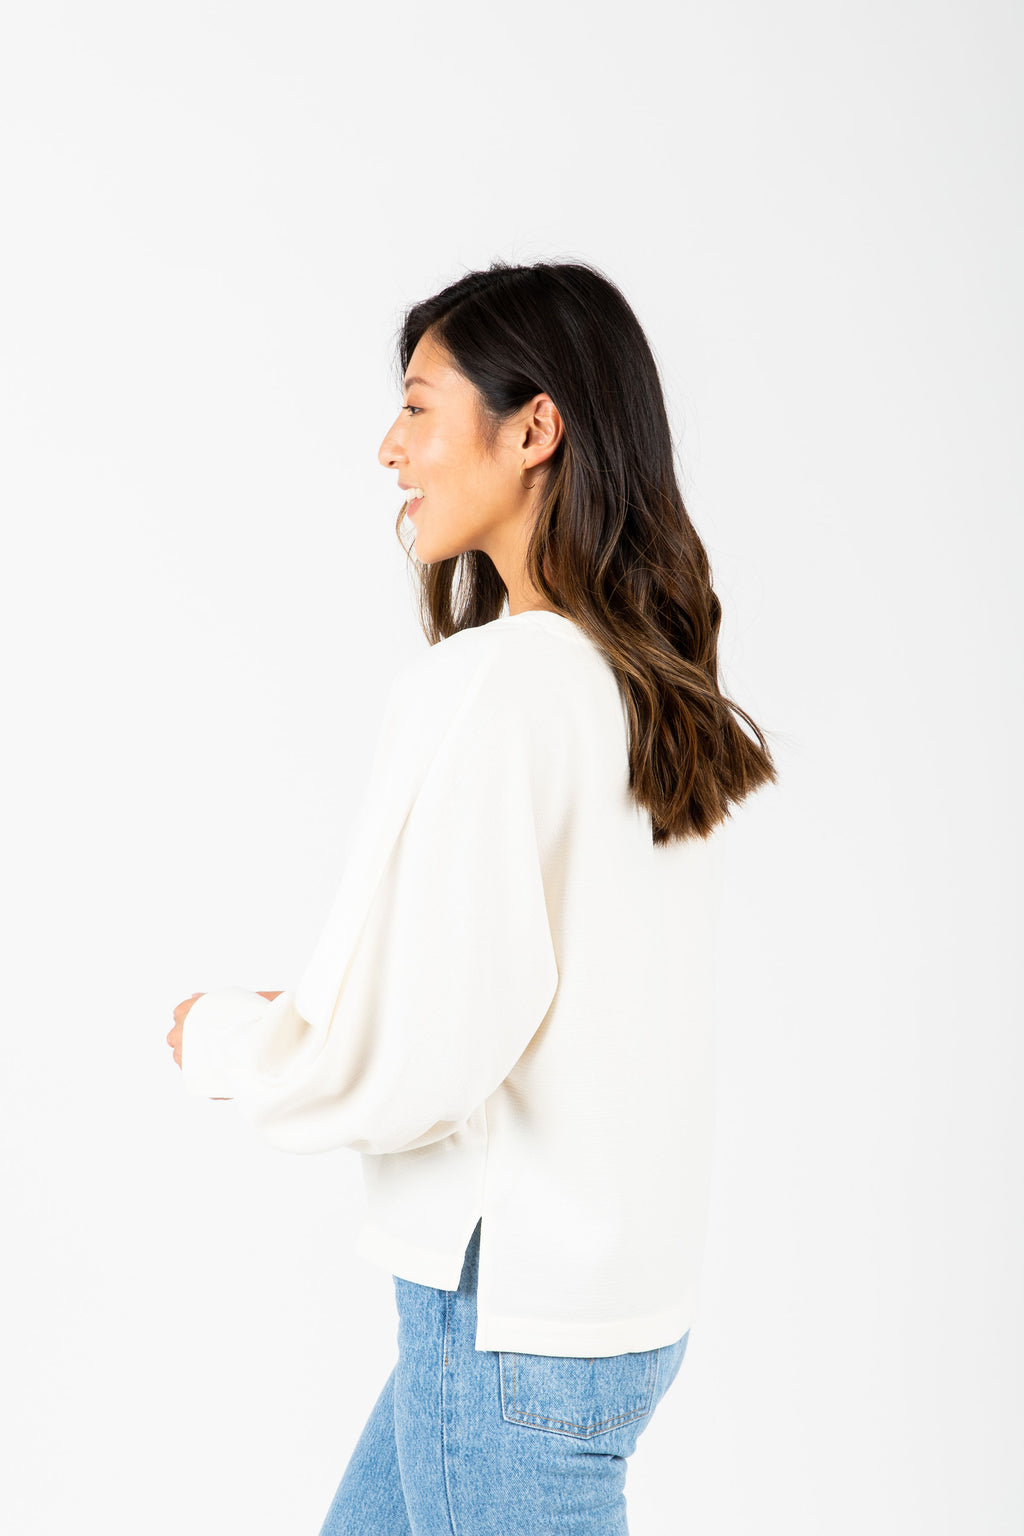 Levi's: Balloon Sleeve Blouse in Cream, studio shoot; side view